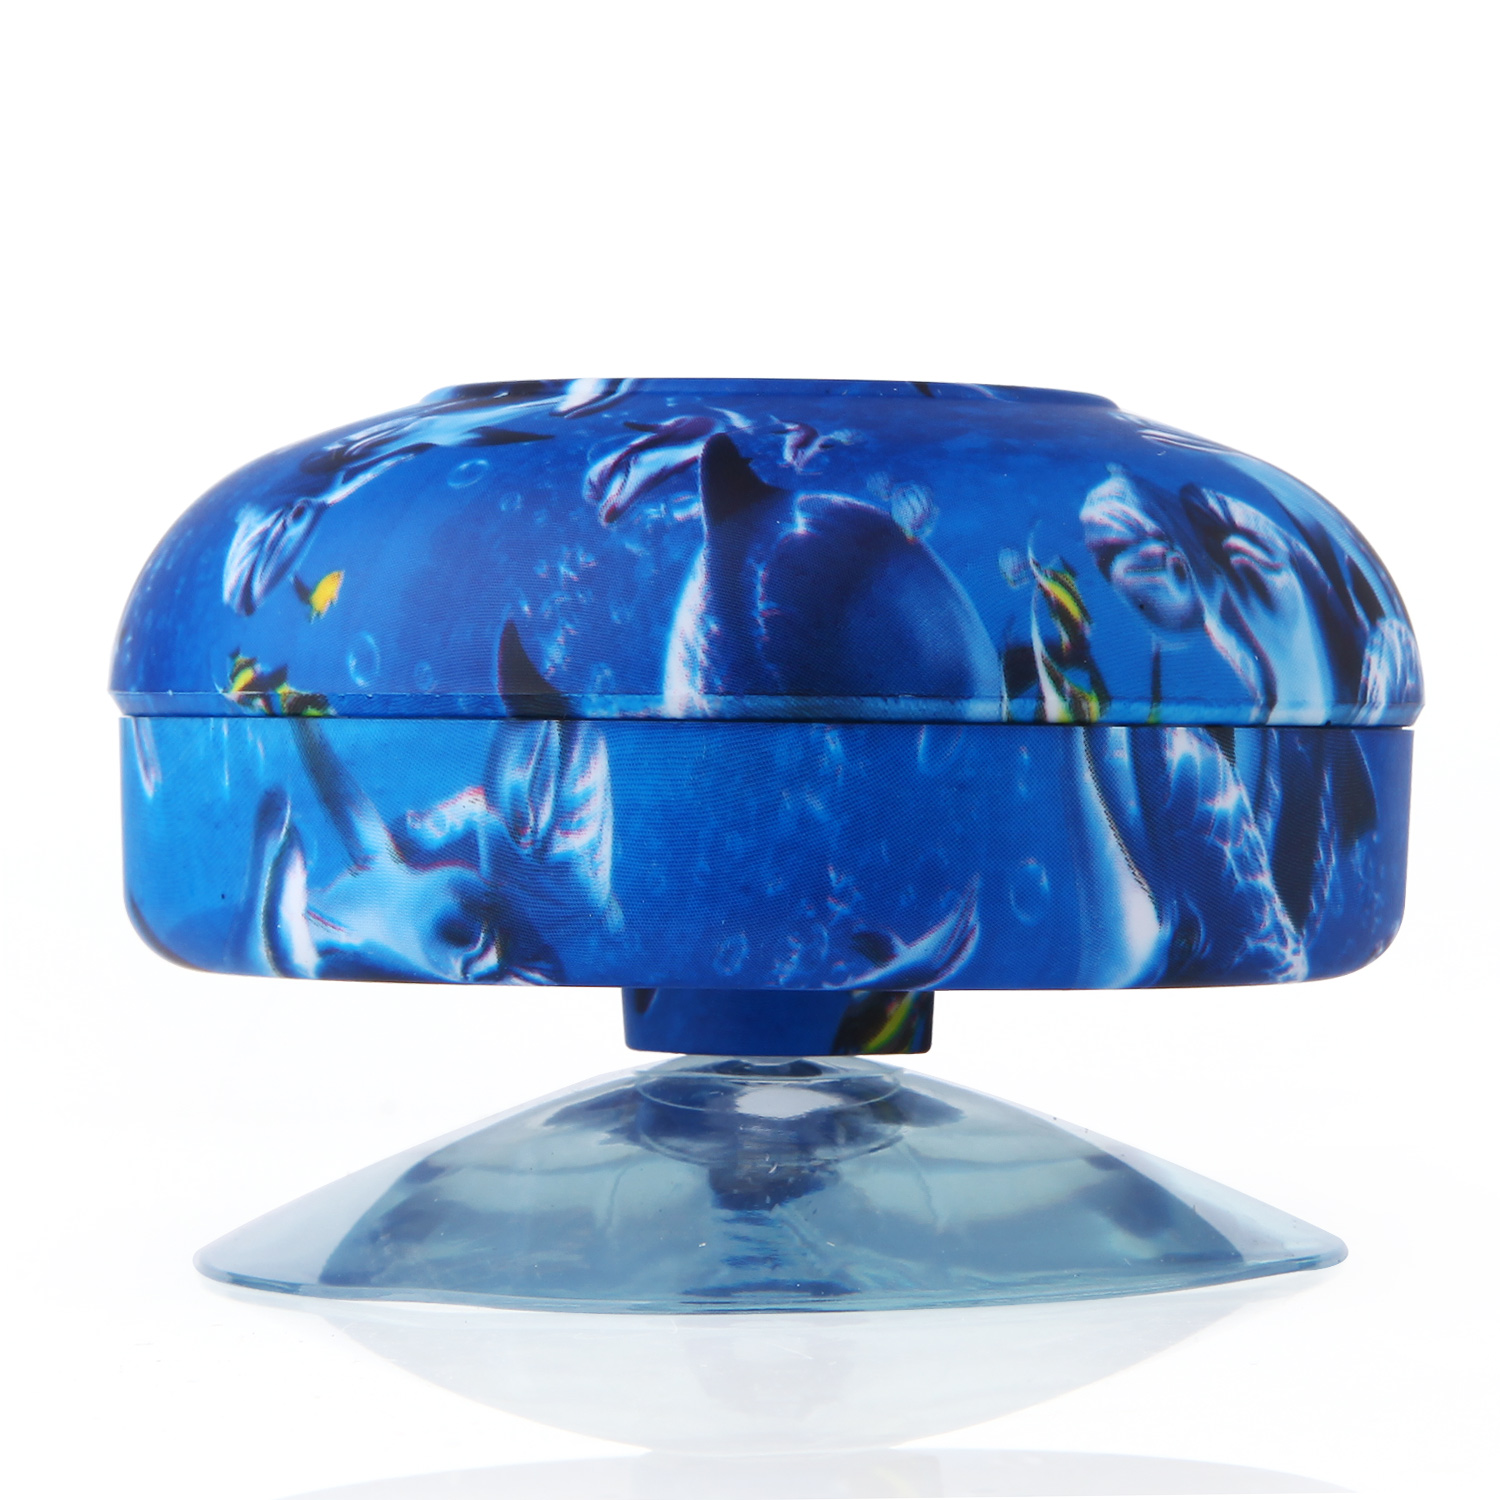 Mini Waterproof Stereo Wireless Bluetooth Speaker Handsfree with Suction Cup Blue Ocean